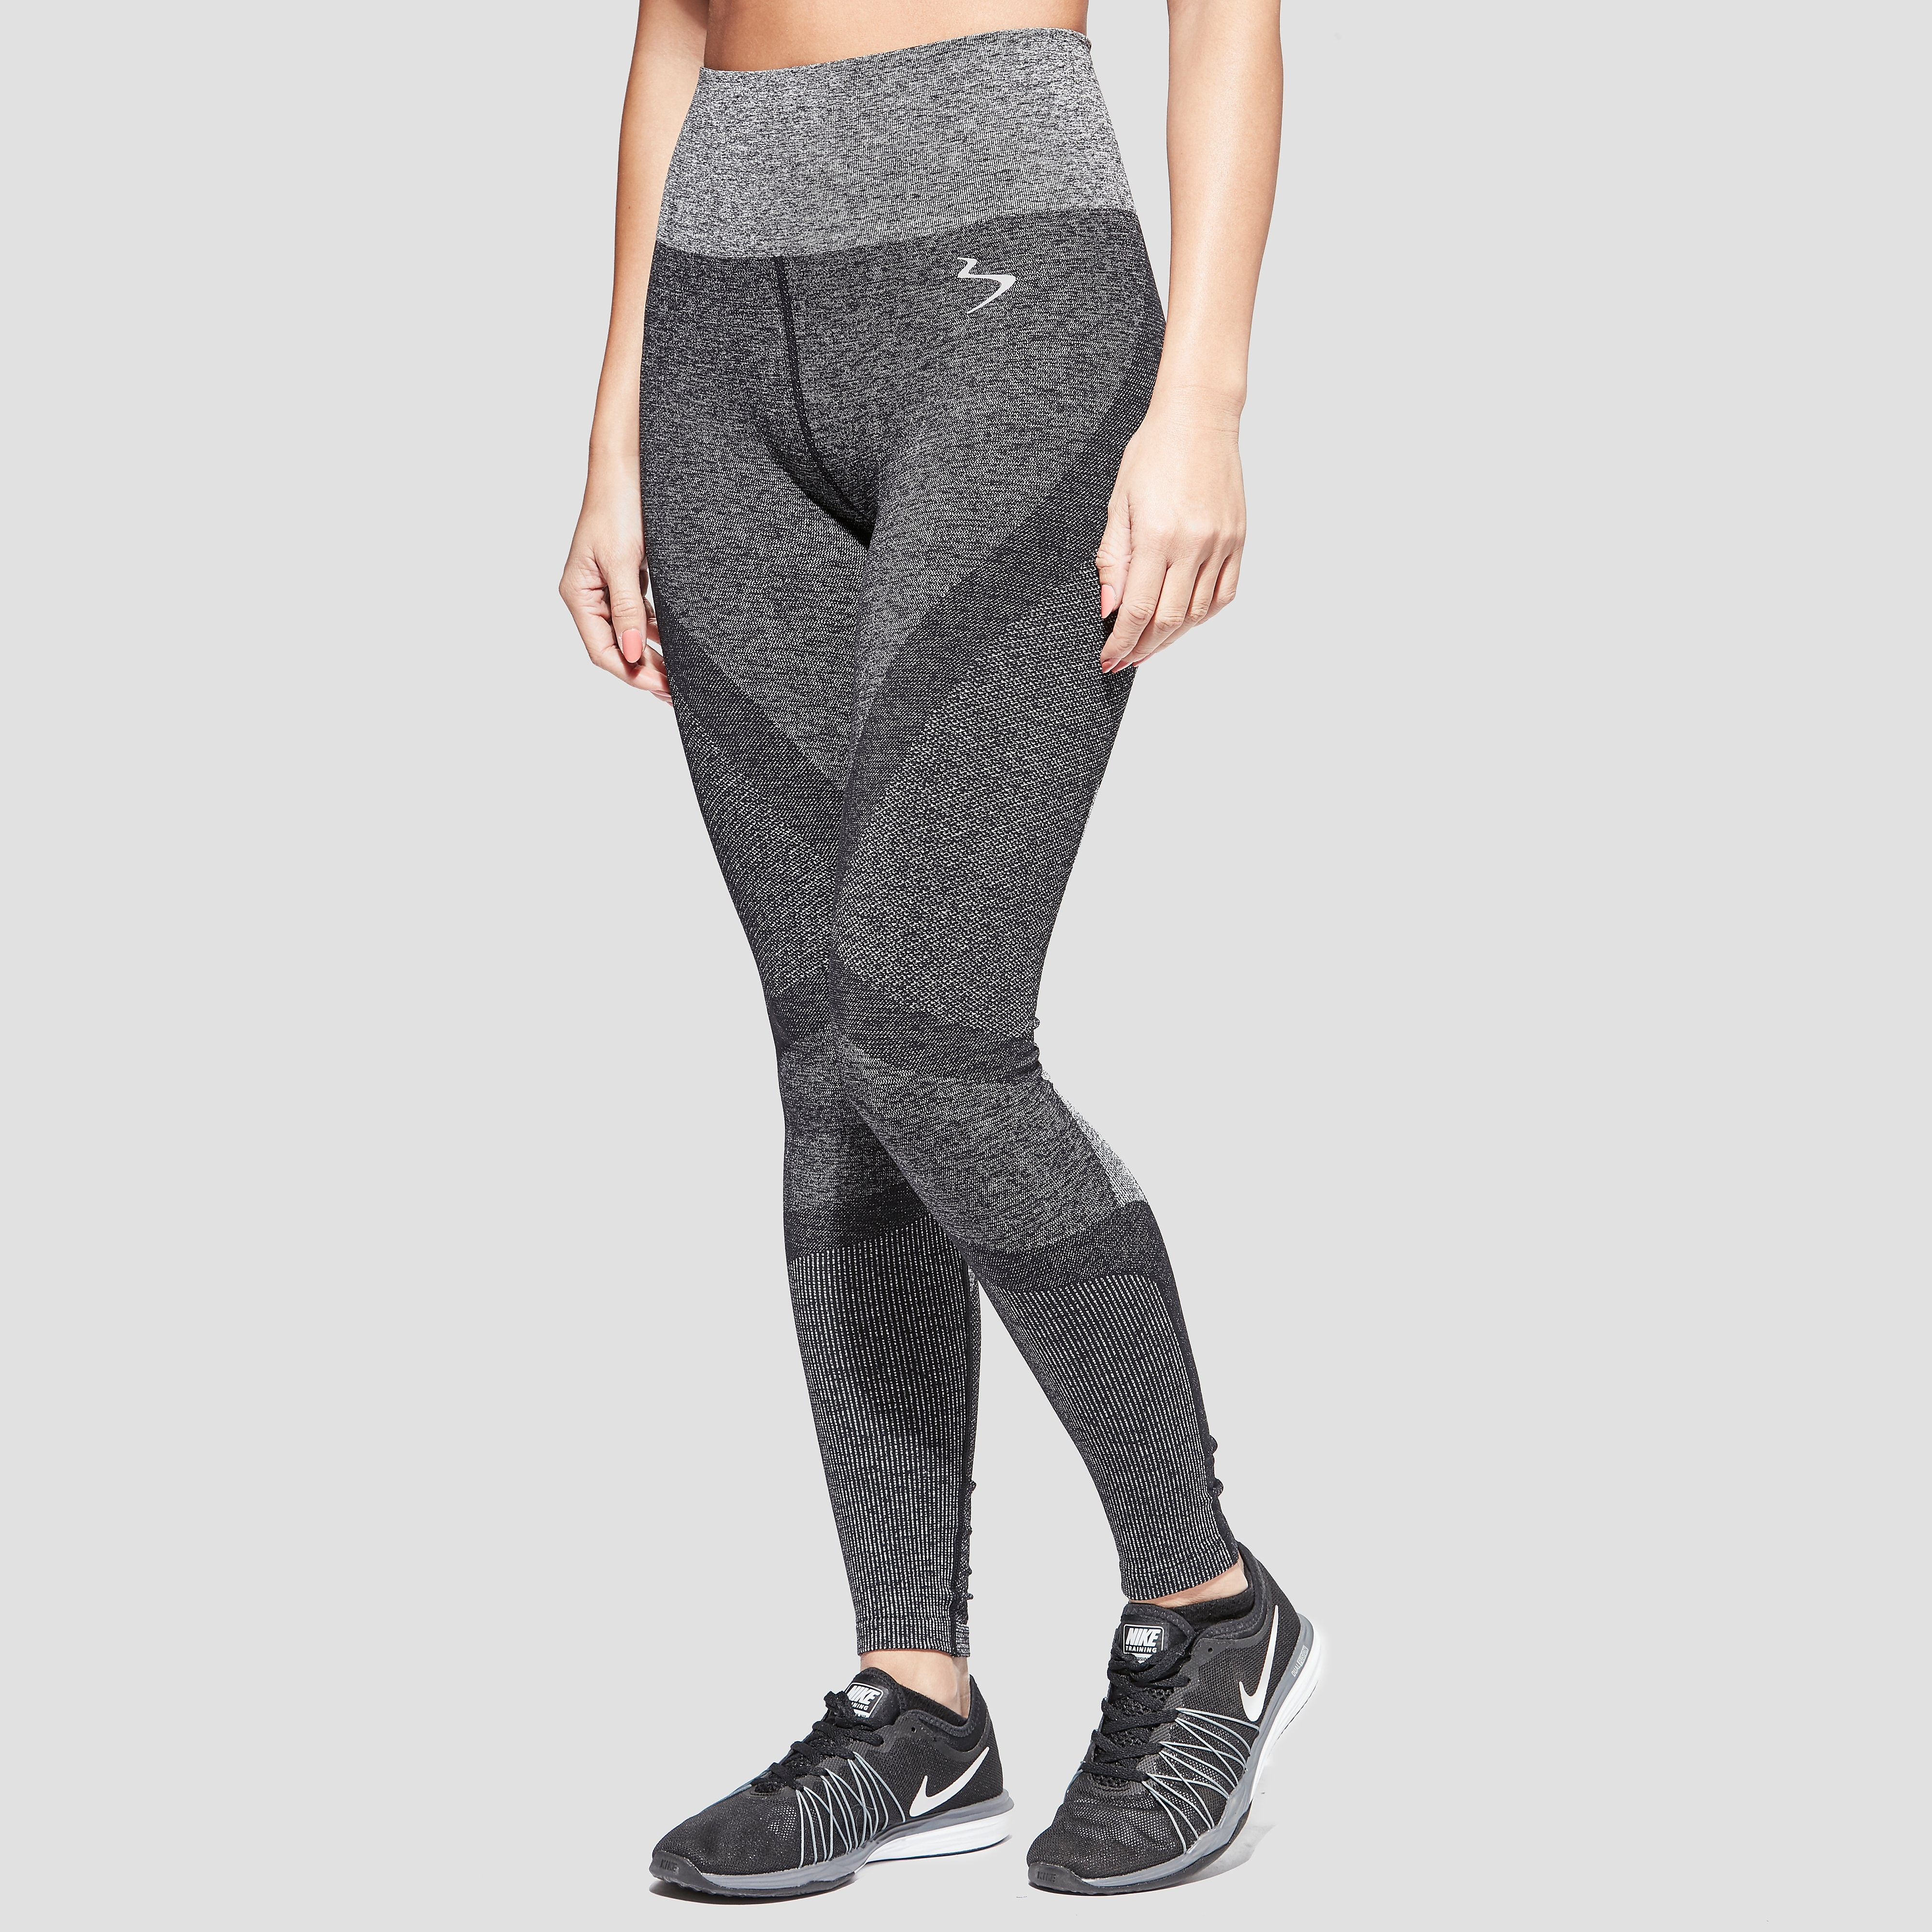 Beachbody Intent Compression Women's Long Tights